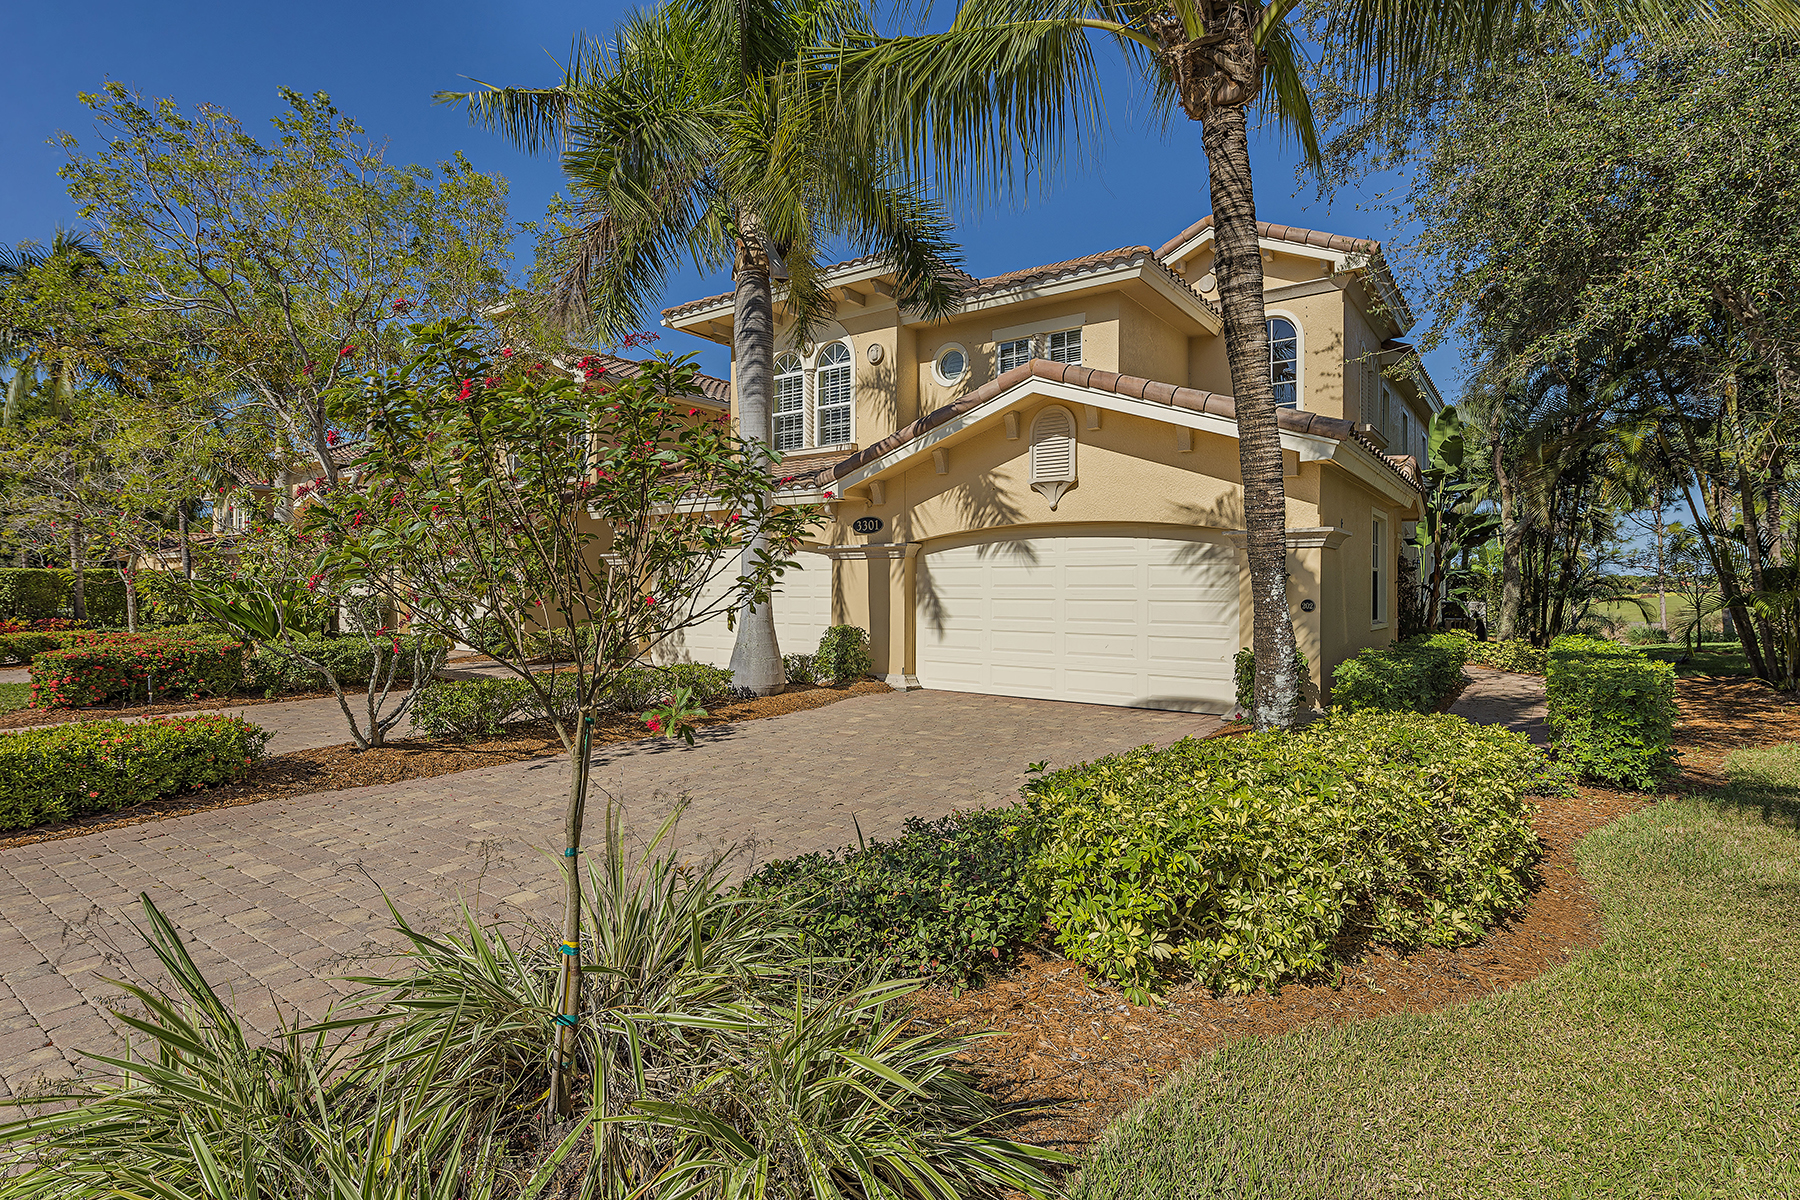 Condominio por un Venta en FIDDLERS CREEK 3301 Club Center Blvd 202 Naples, Florida, 34114 Estados Unidos